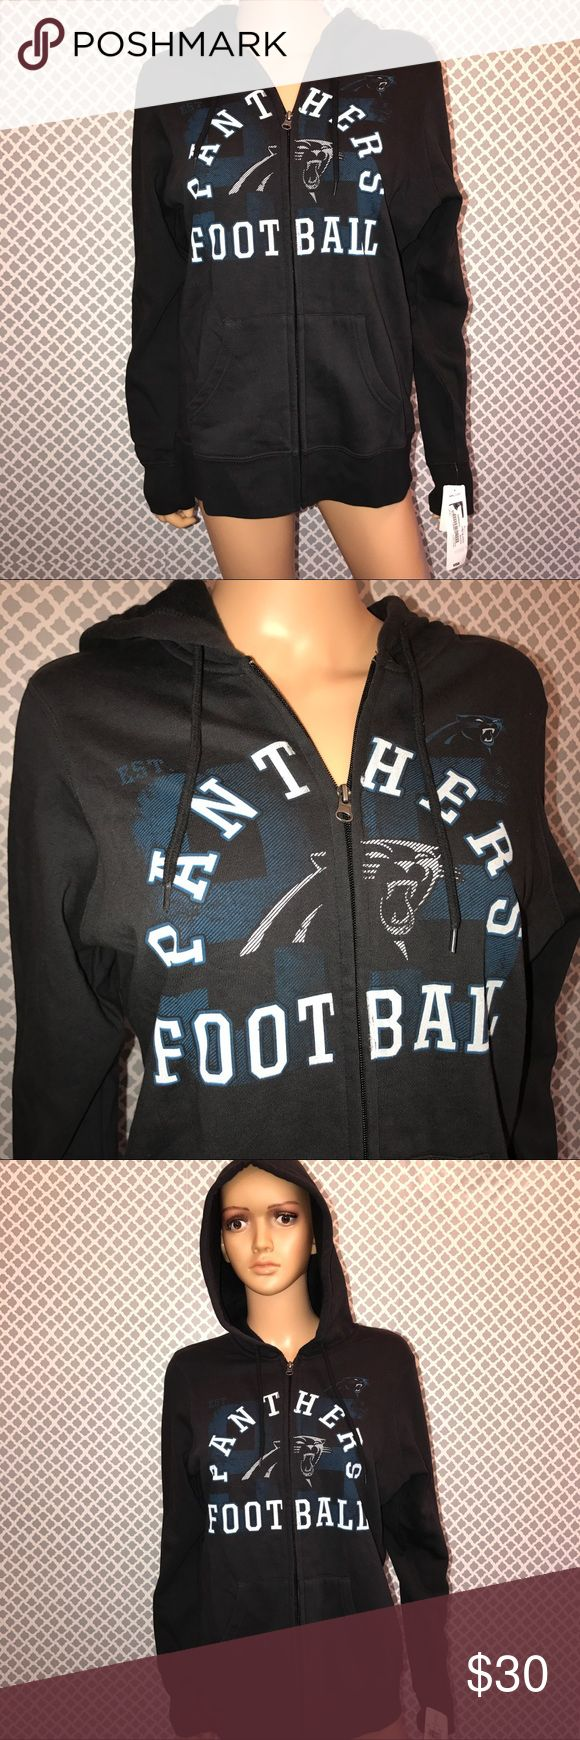 NWT NFL Carolina Panthers Team Apparel Hoodie sz L New with tags. Medium weight. Size Large. Rep your team! 🐾 NFL Jackets & Coats